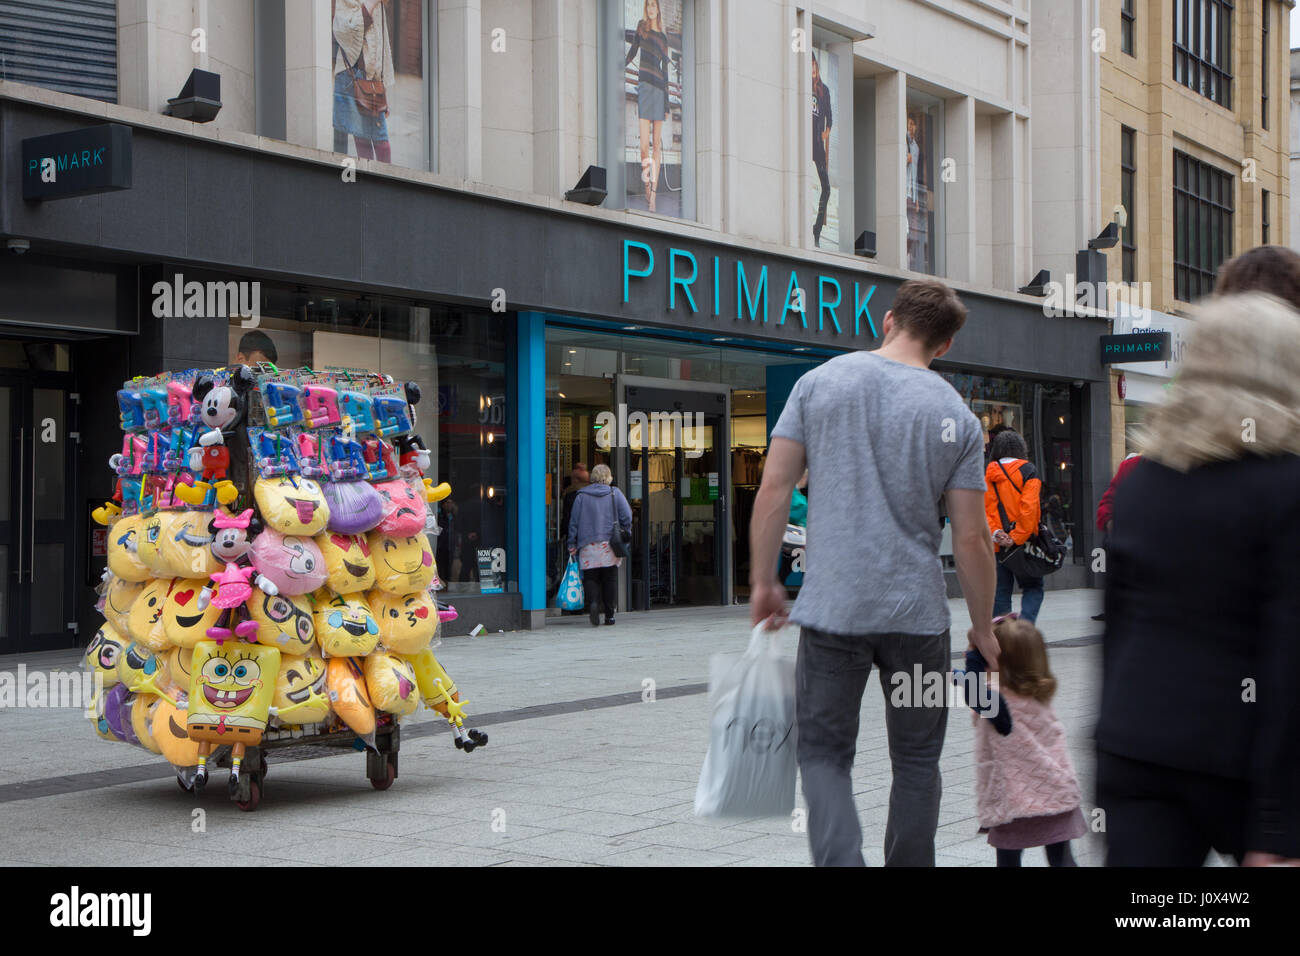 Primark on Queen Street, Cardiff. Vendors in the foreground are selling emoji cushions etc. - Stock Image